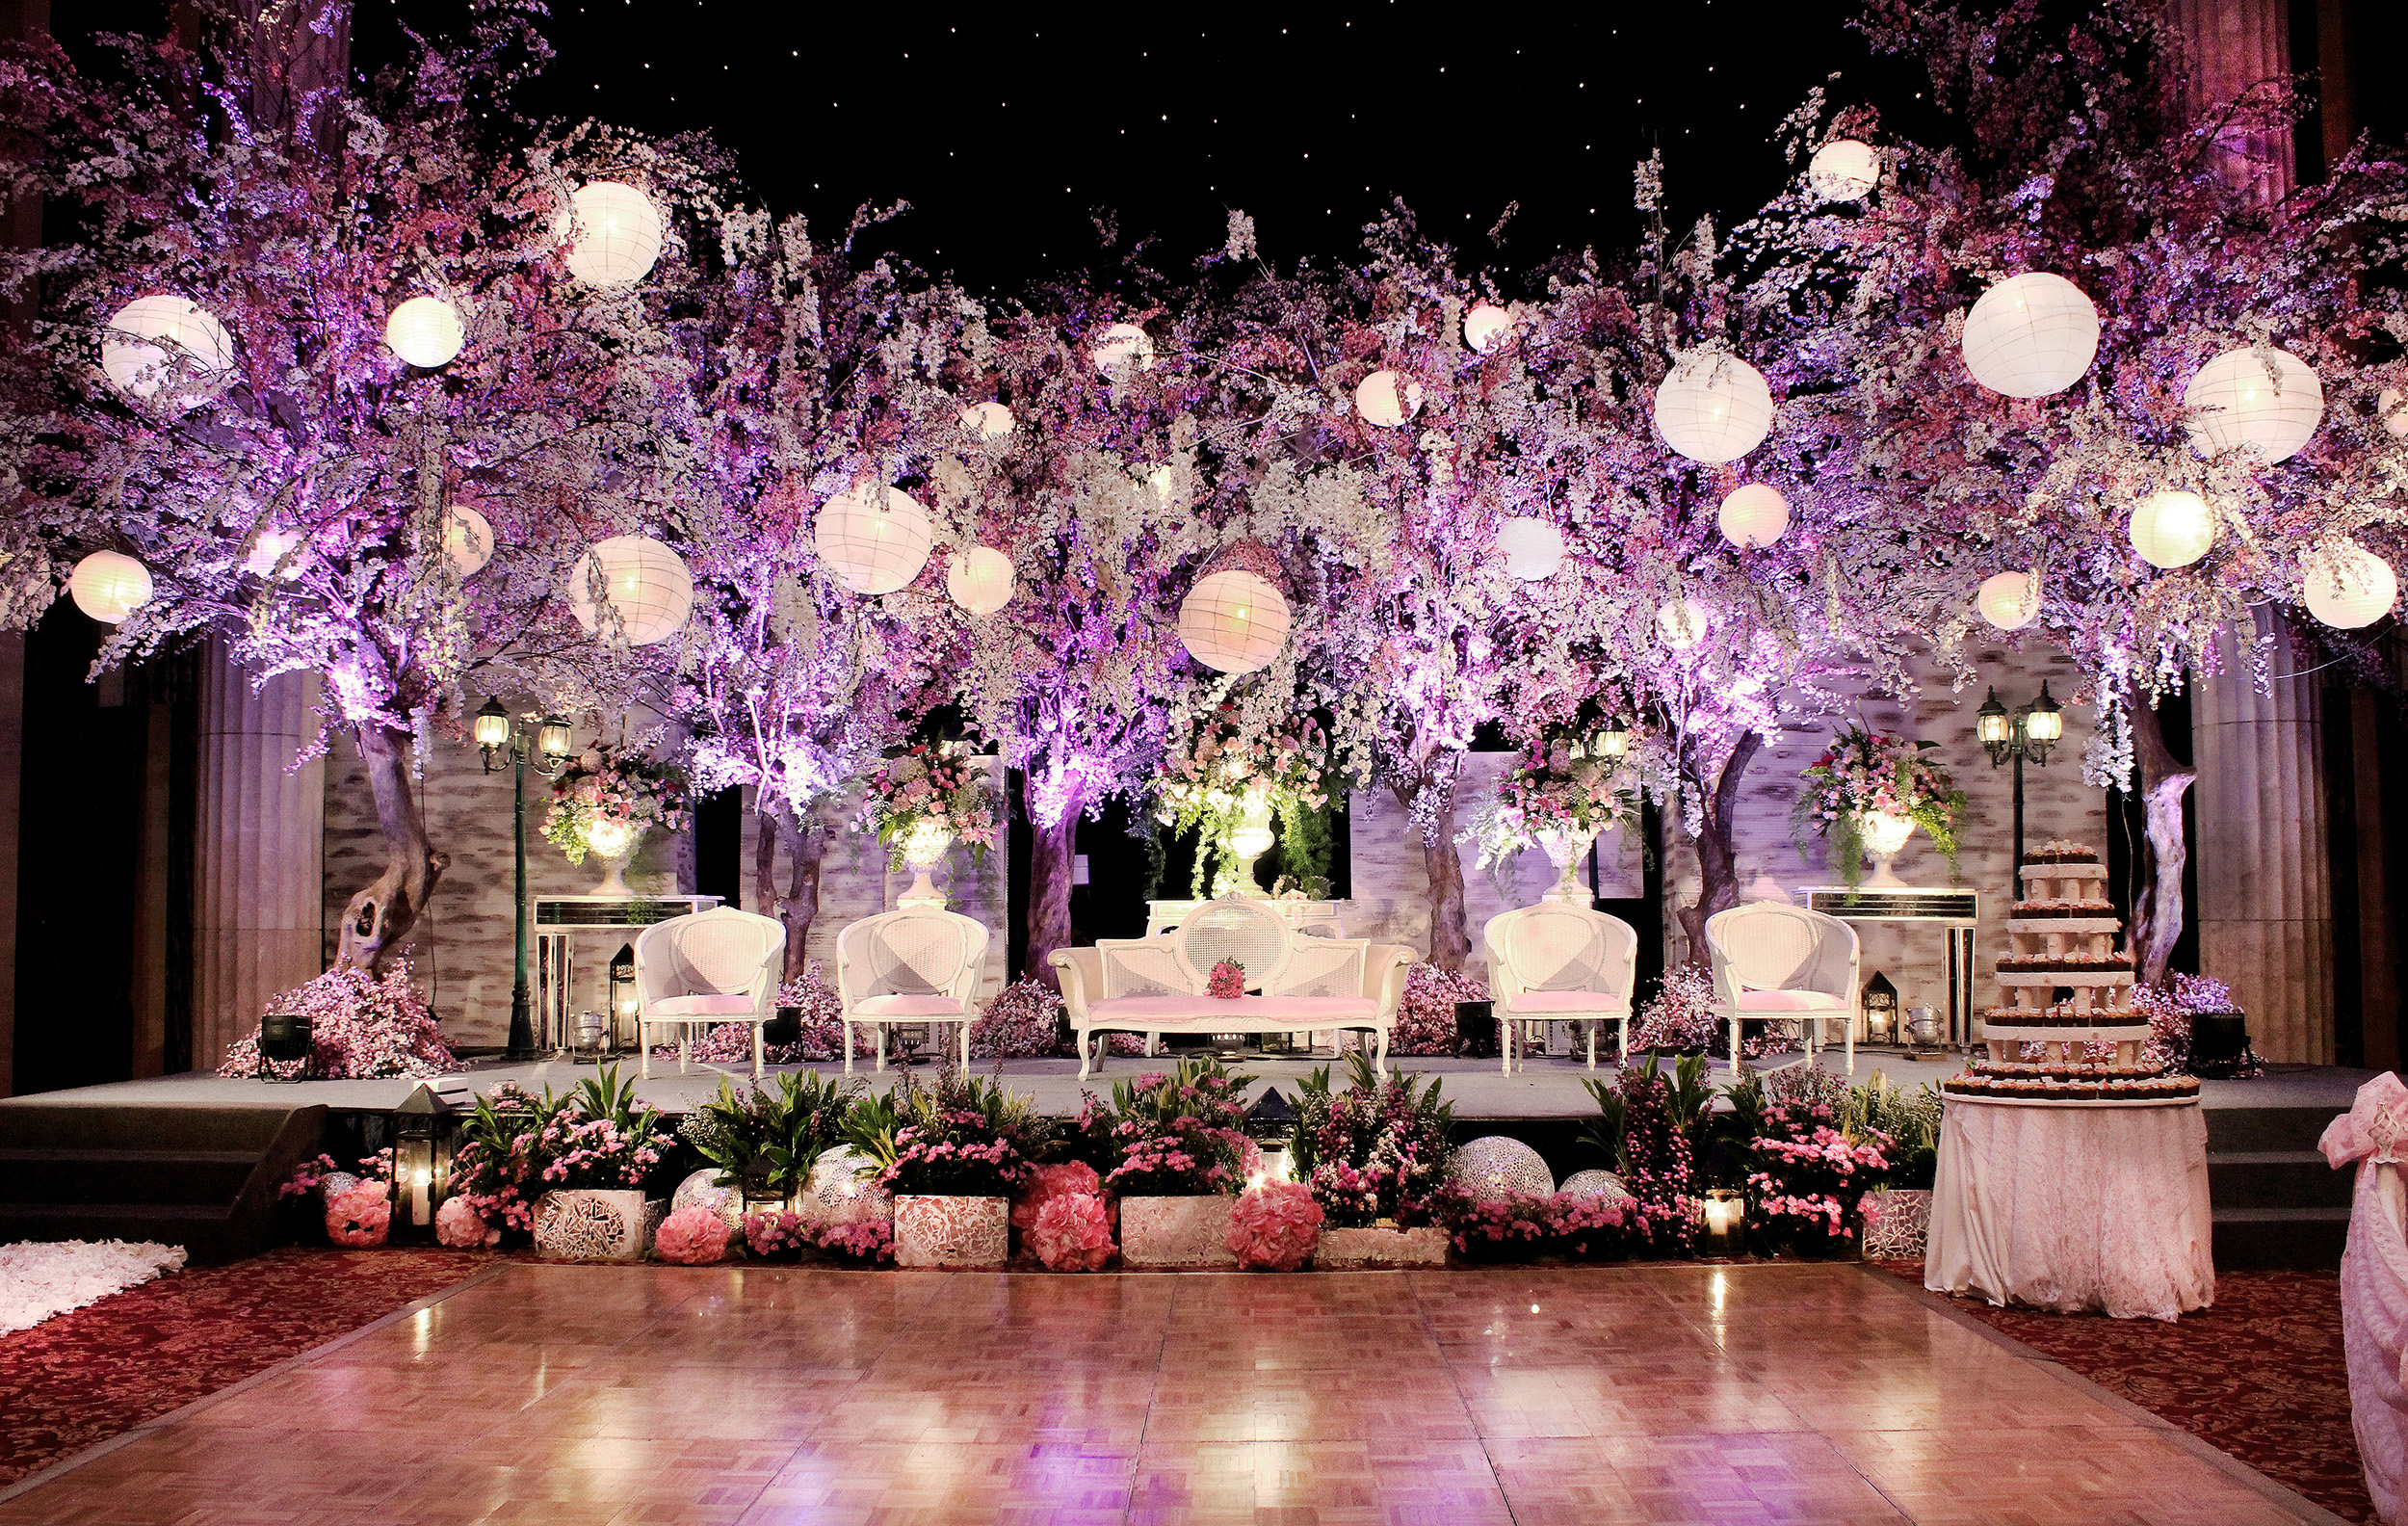 Azalia decorationwedding decoration azalia decoration sakura wedding decoration kempinski hotel jakarta by azalia decoration junglespirit